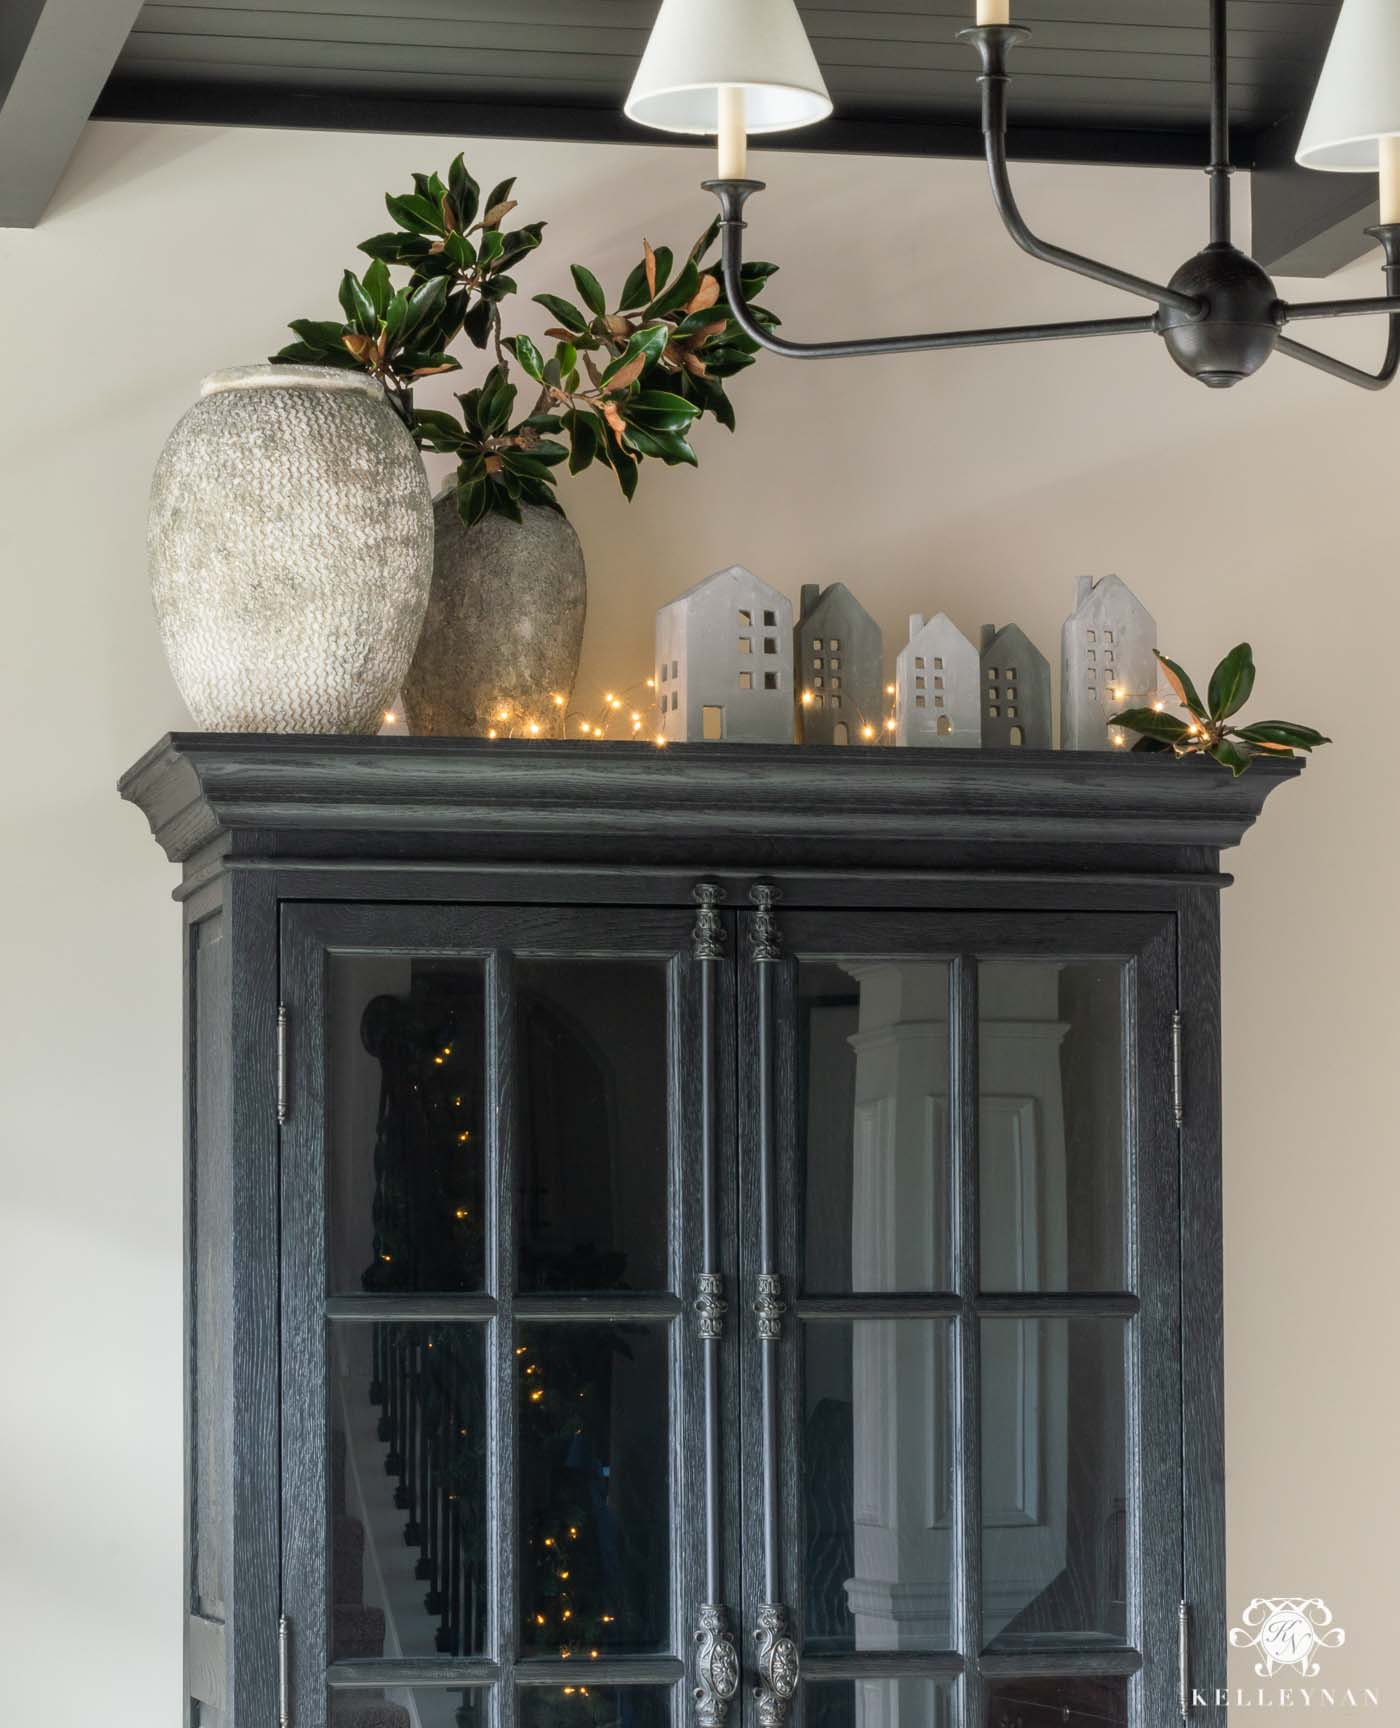 How to Decorate the Top of a Cabinet for Christmas